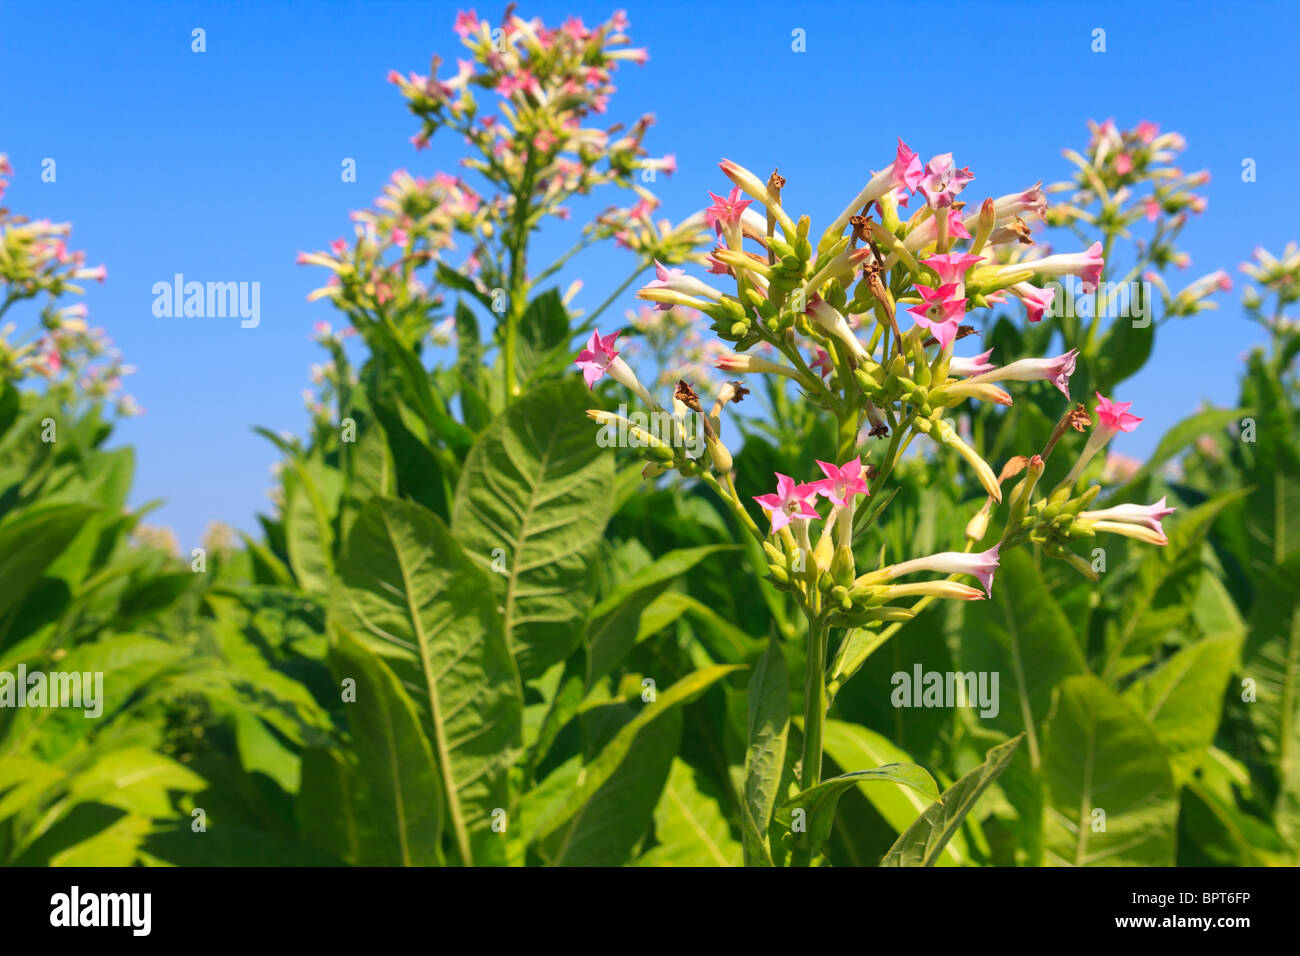 Tobacco plants with leaves, flowers and buds - Stock Image